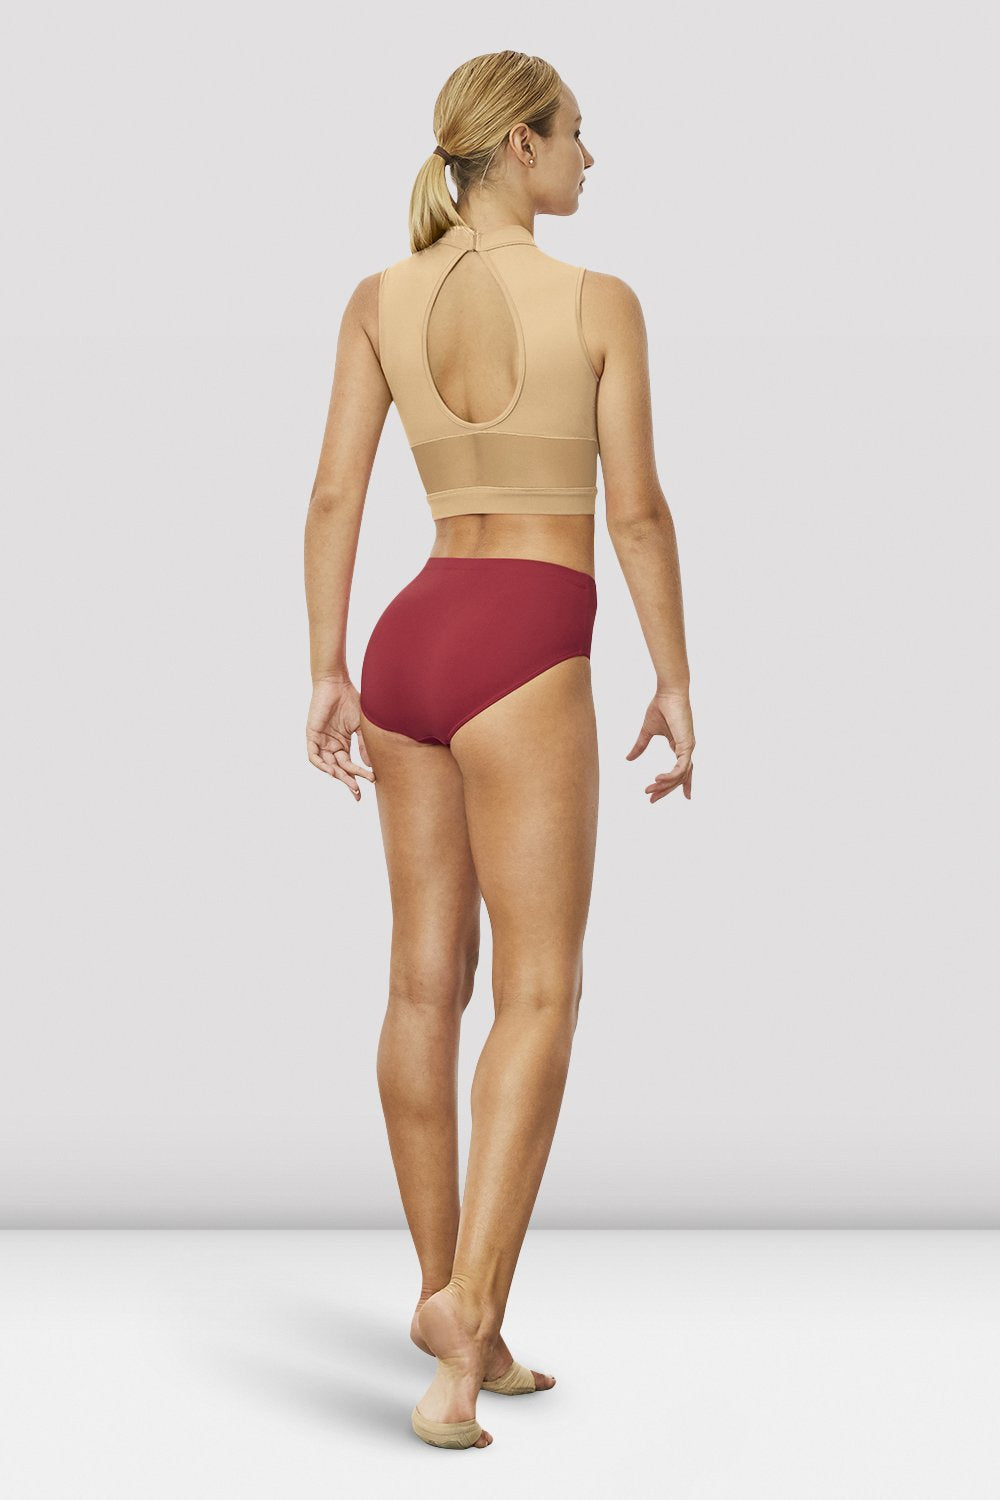 Ladies Chiaki Open Back Crop Top - BLOCH US